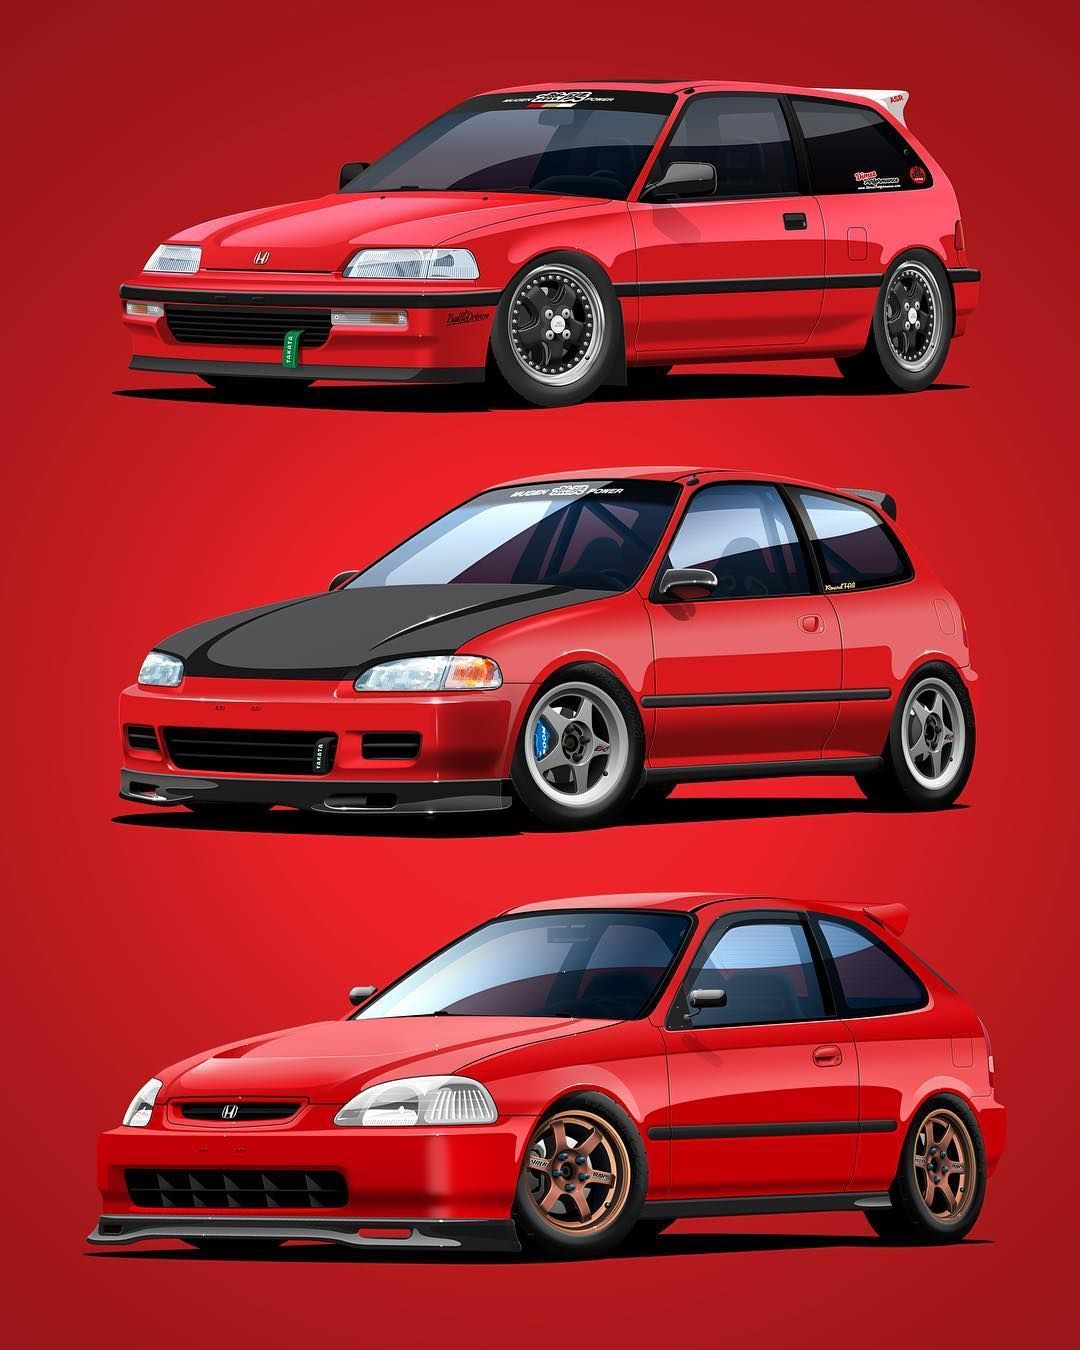 Auto Artworks On Instagram Inspired By A Collage Made Of My Work By Honda Hatch 92 Here S A Civic Generati Honda Civic Hatchback Civic Hatchback Honda Civic